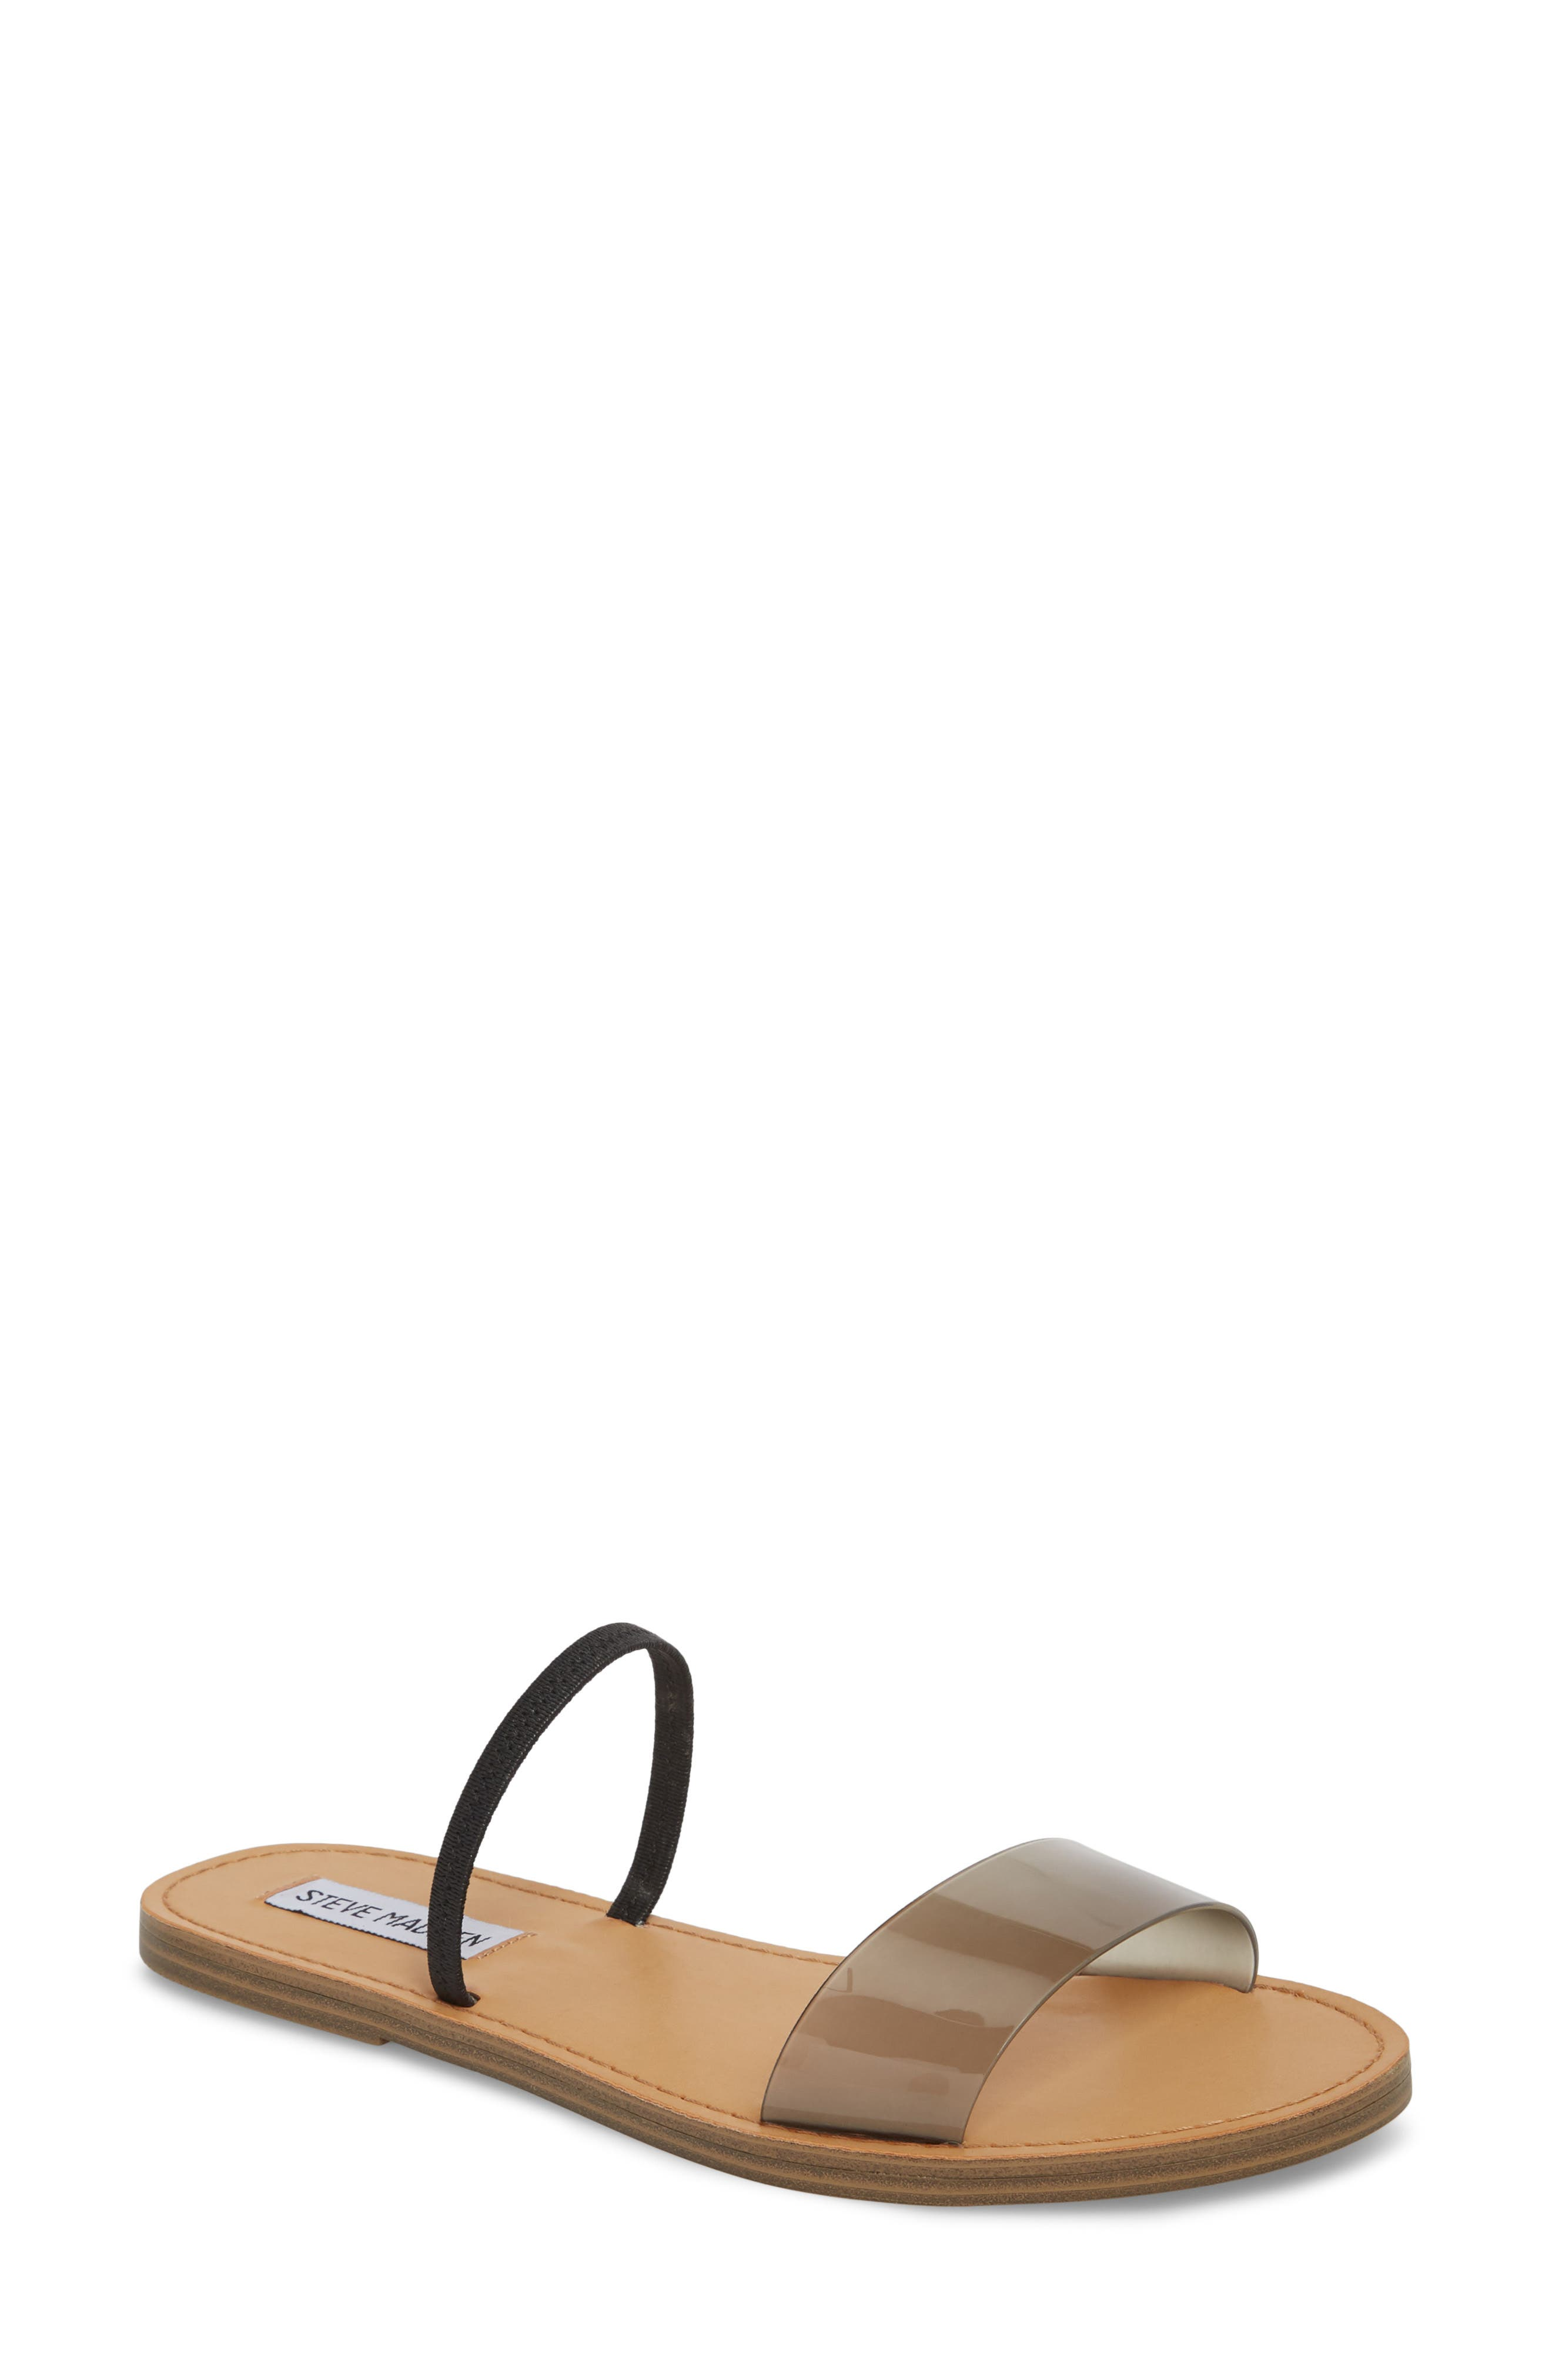 Dasha Strappy Slide Sandal,                         Main,                         color, 095